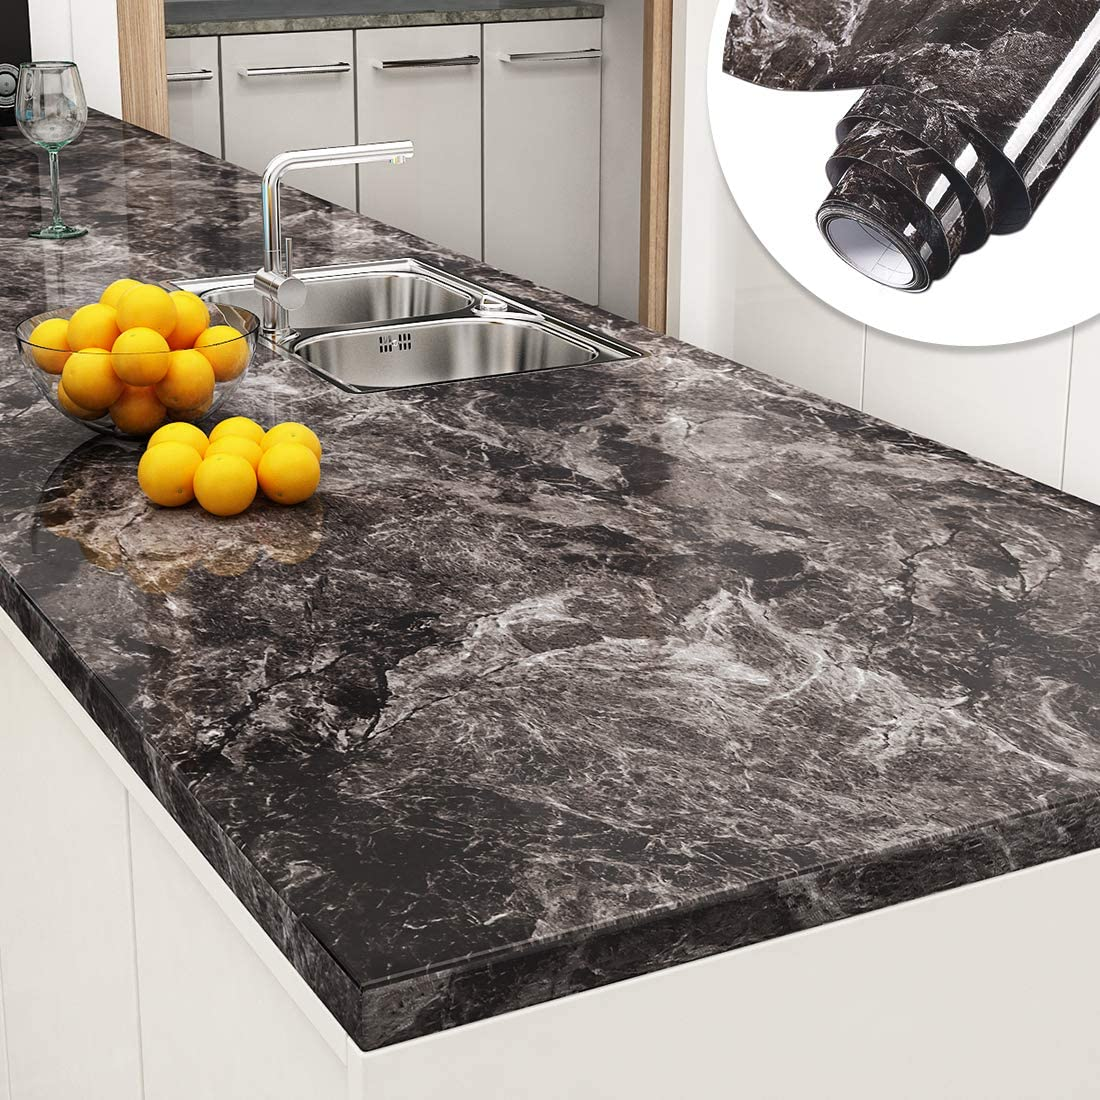 Yenhome Faux Marble Counter Top Covers Peel and Stick 9 x 9 inch  Sandstone Black Brown Marble Wallpaper for Countertop Peel and Stick  Wallpaper ...